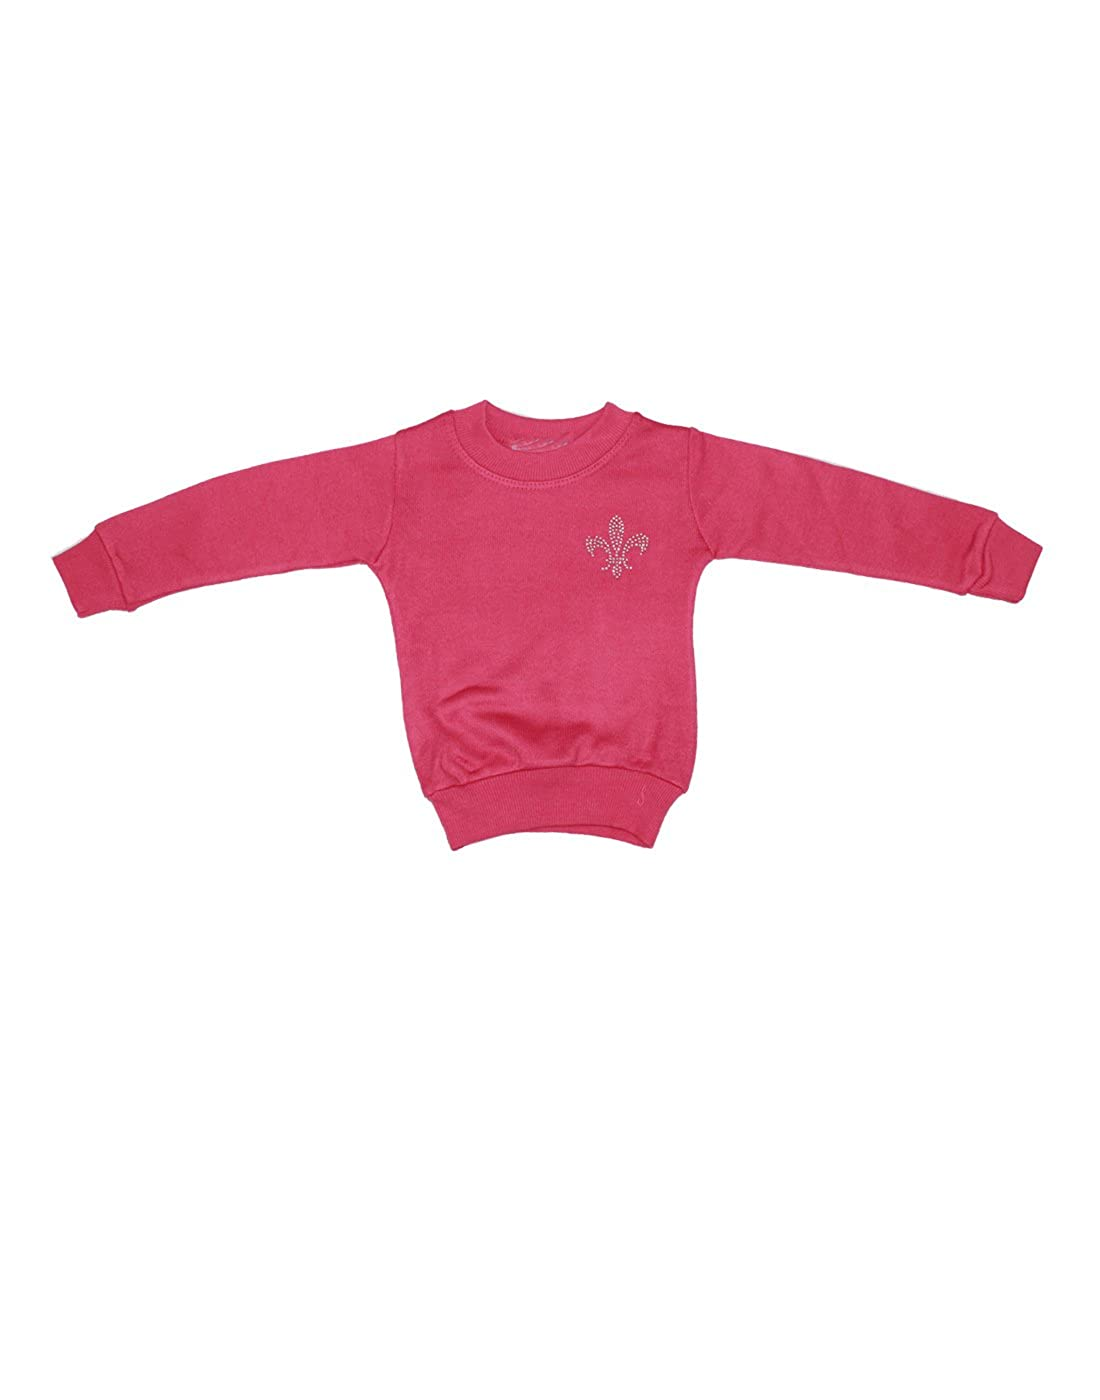 3fc641802 Babeezworld Baby Little Girl s soft Full Sleeve Round Neck Winter ...